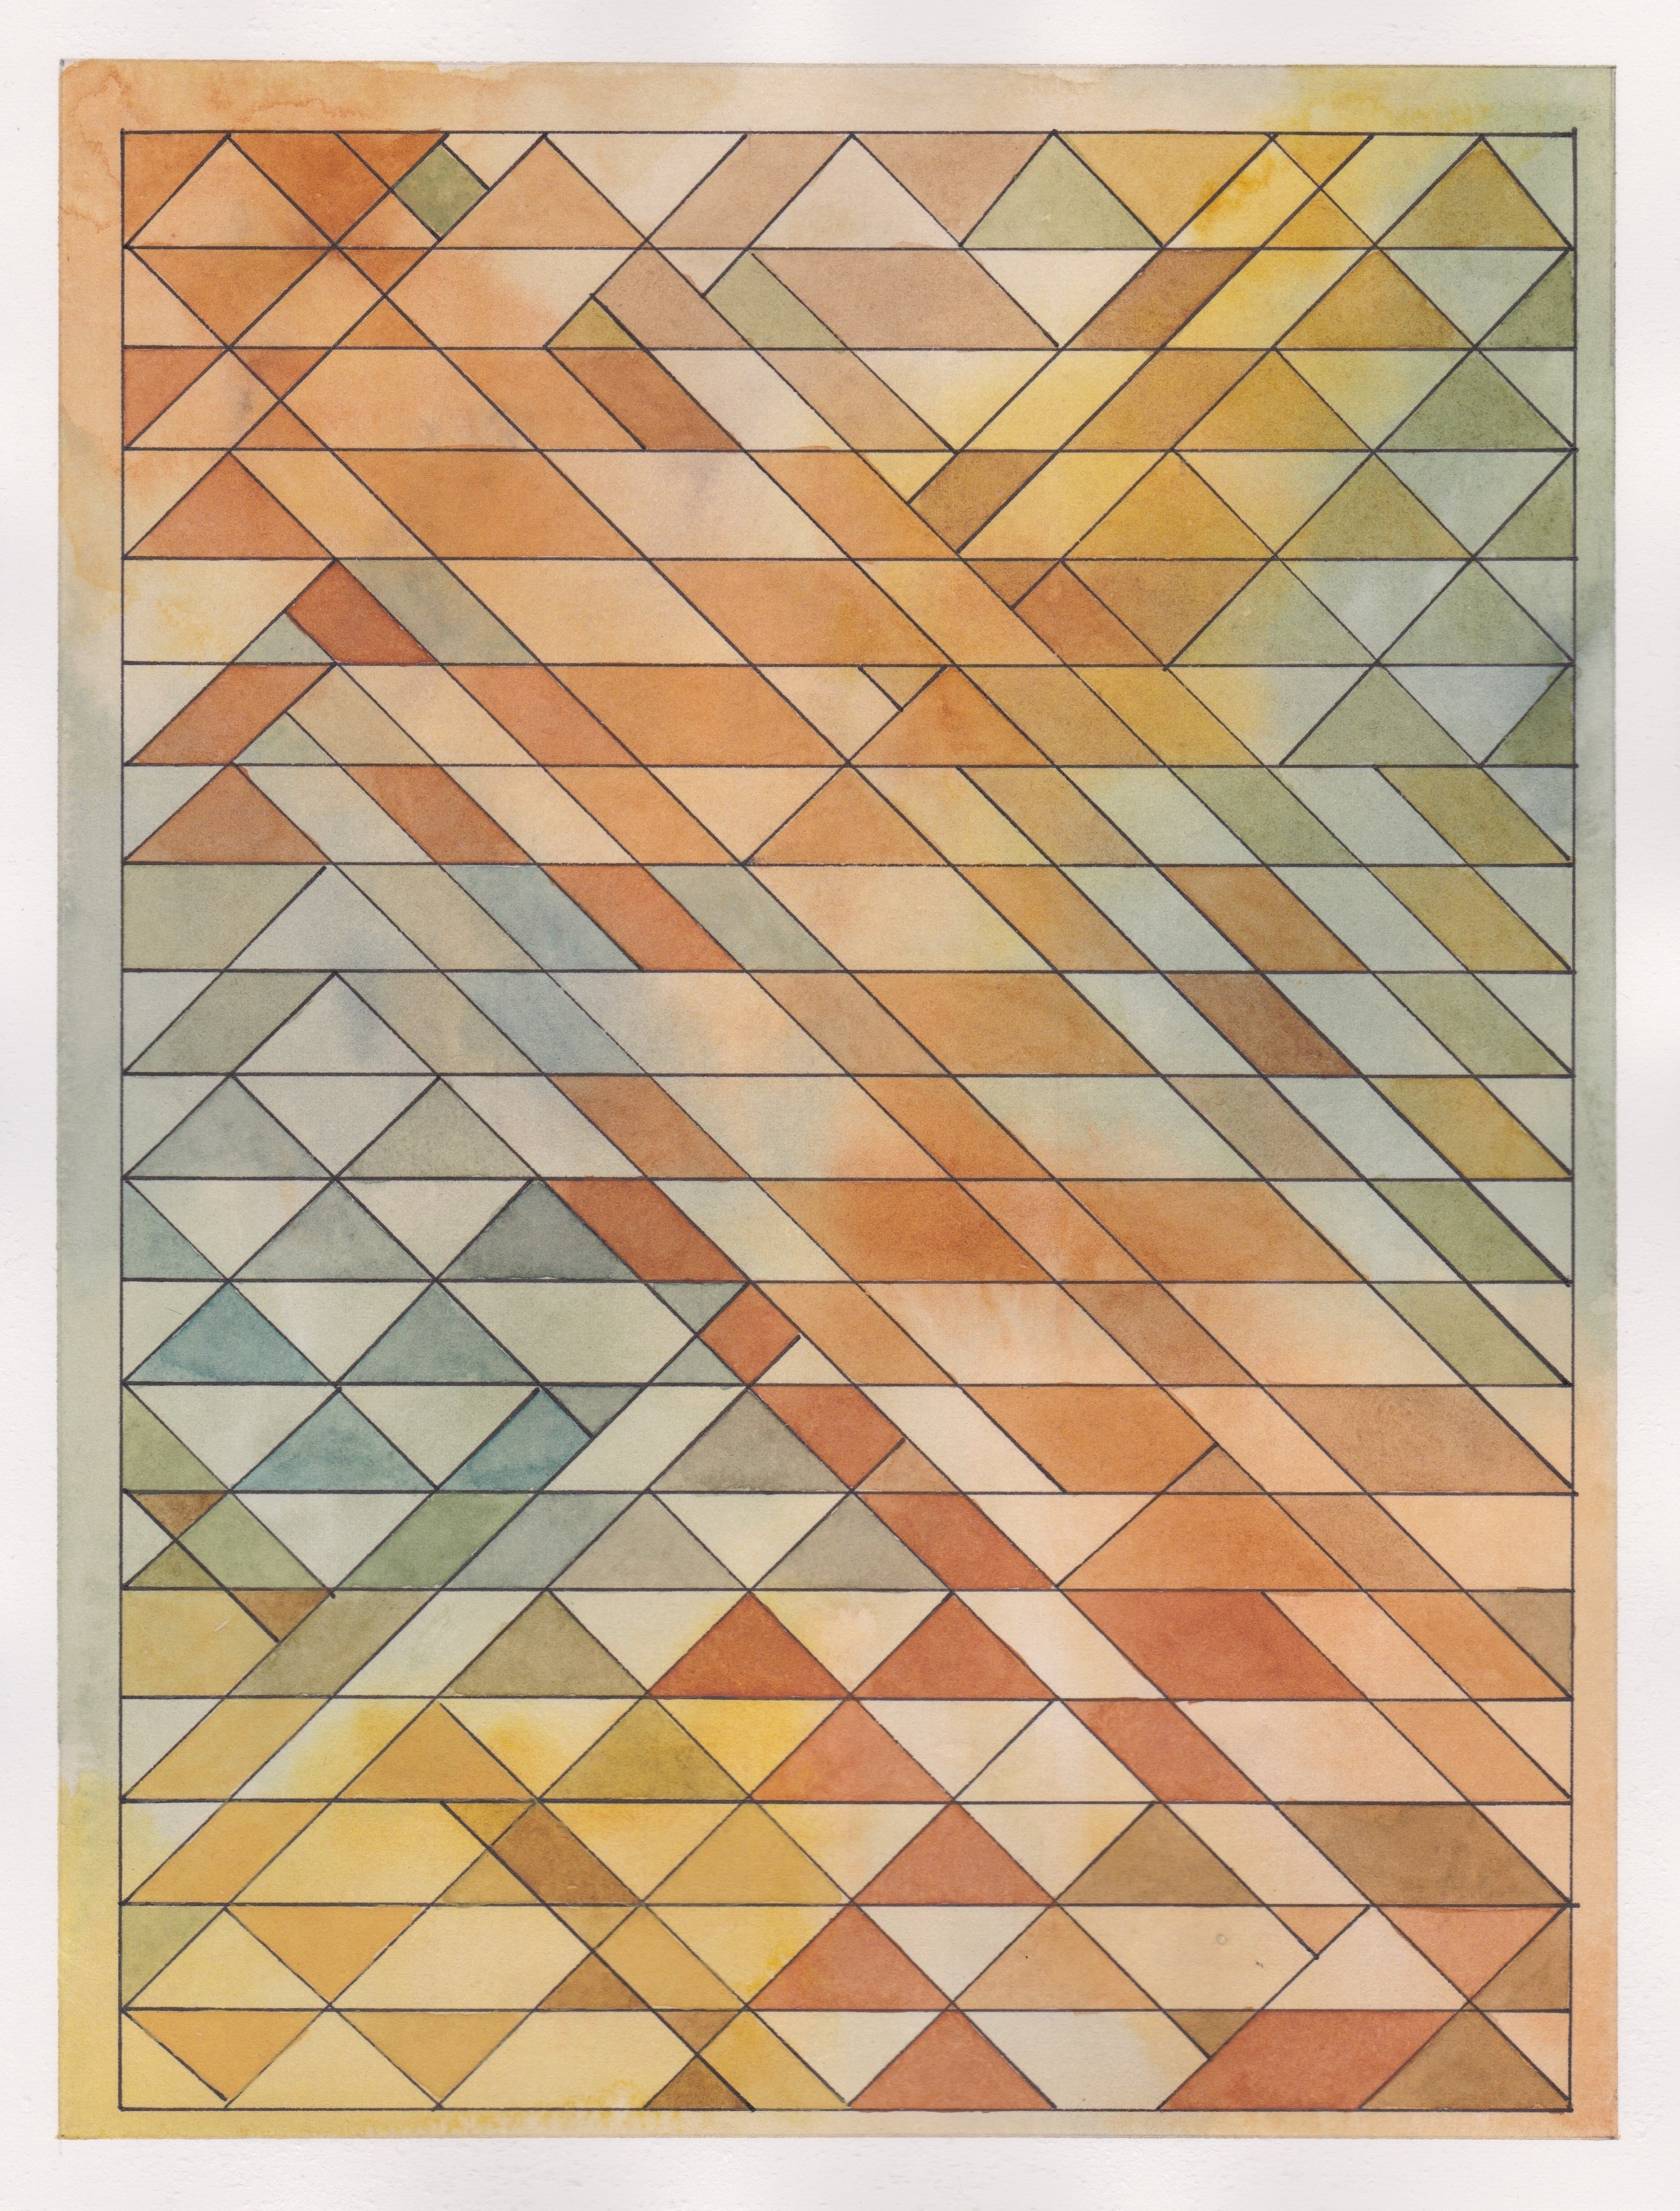 """Ephemeral Triangles no.21 - Autumn Light, 2017. Watercolor + Ink on Paper. 11.5""""x8.5"""""""